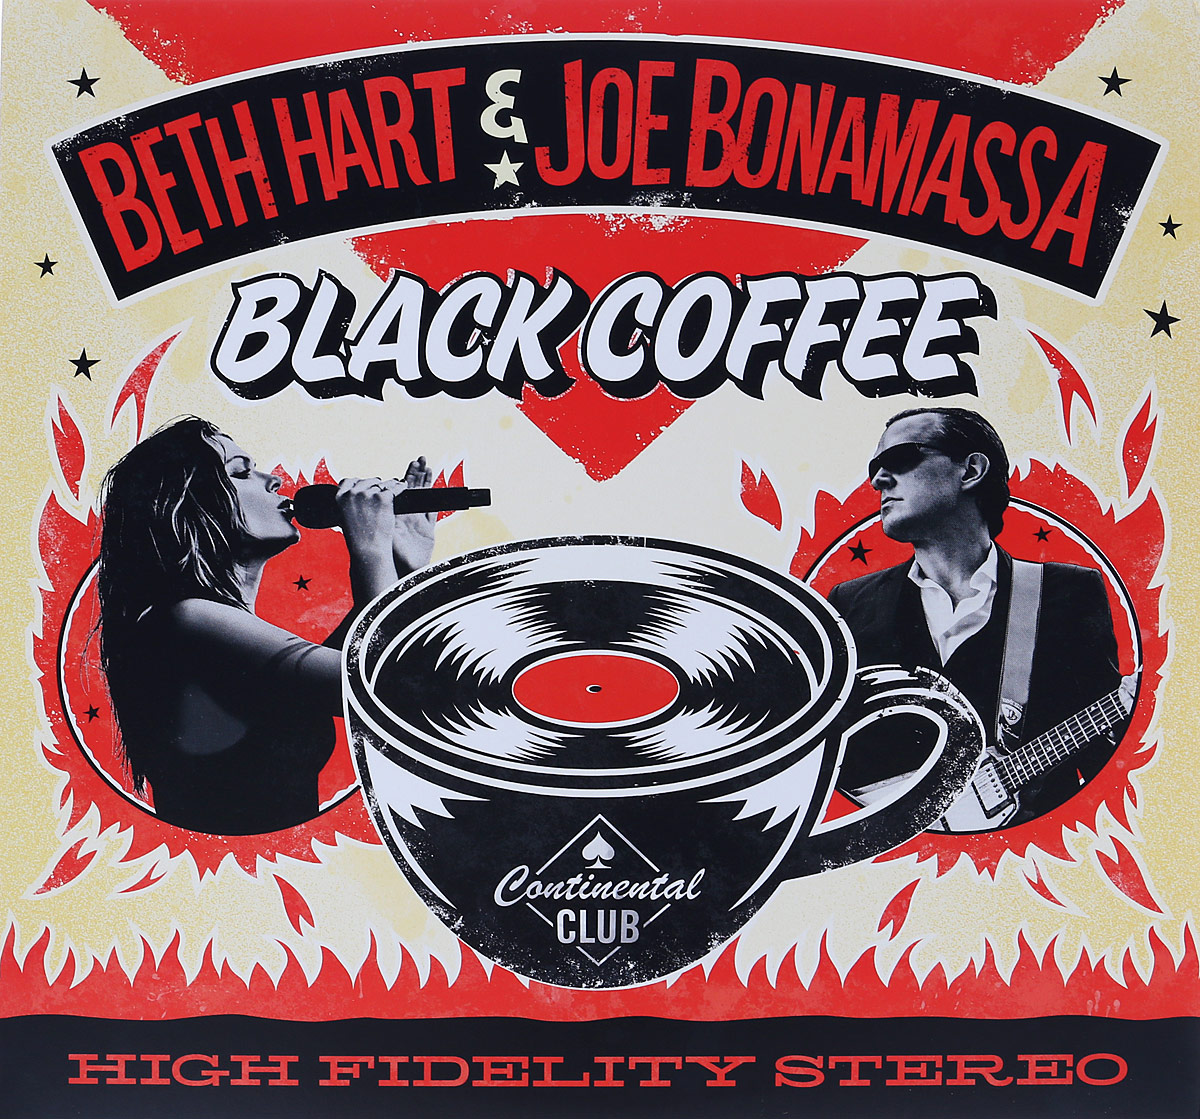 Бет Хат,Джо Бонамасса Beth Hart & Joe Bonamassa. Black Coffee (2 LP)